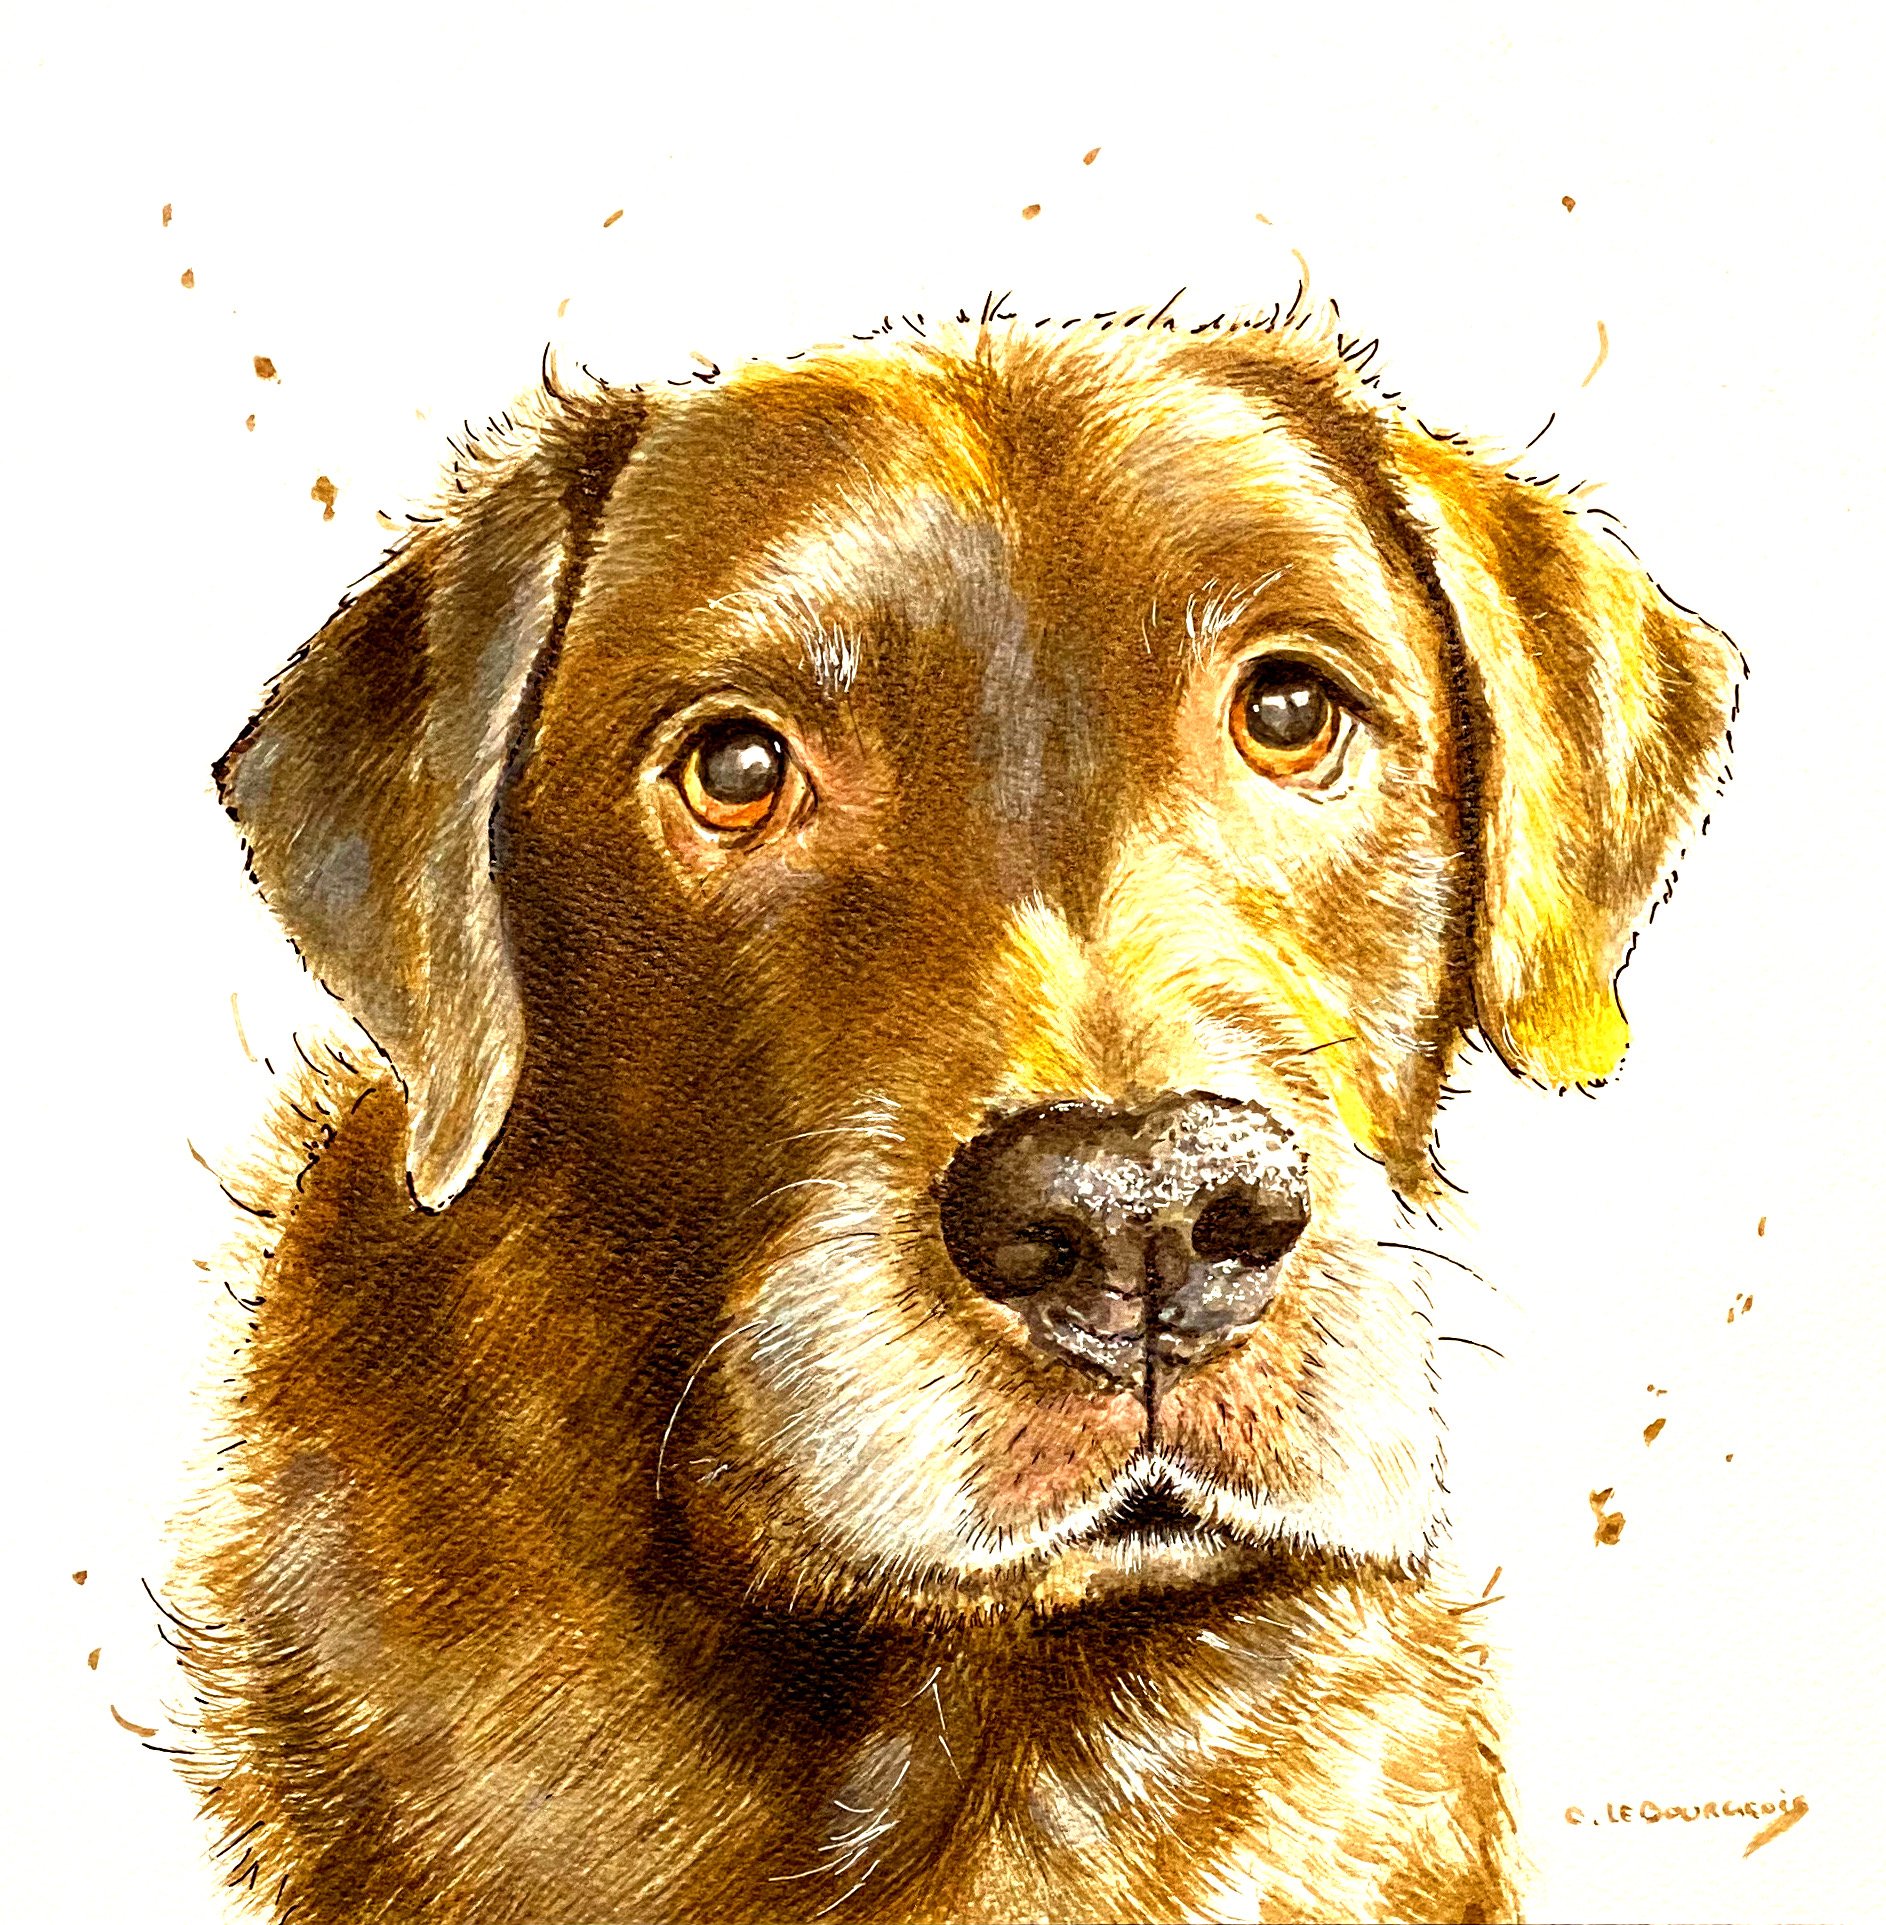 Pet portrait of Moose the chocolate Labrador.